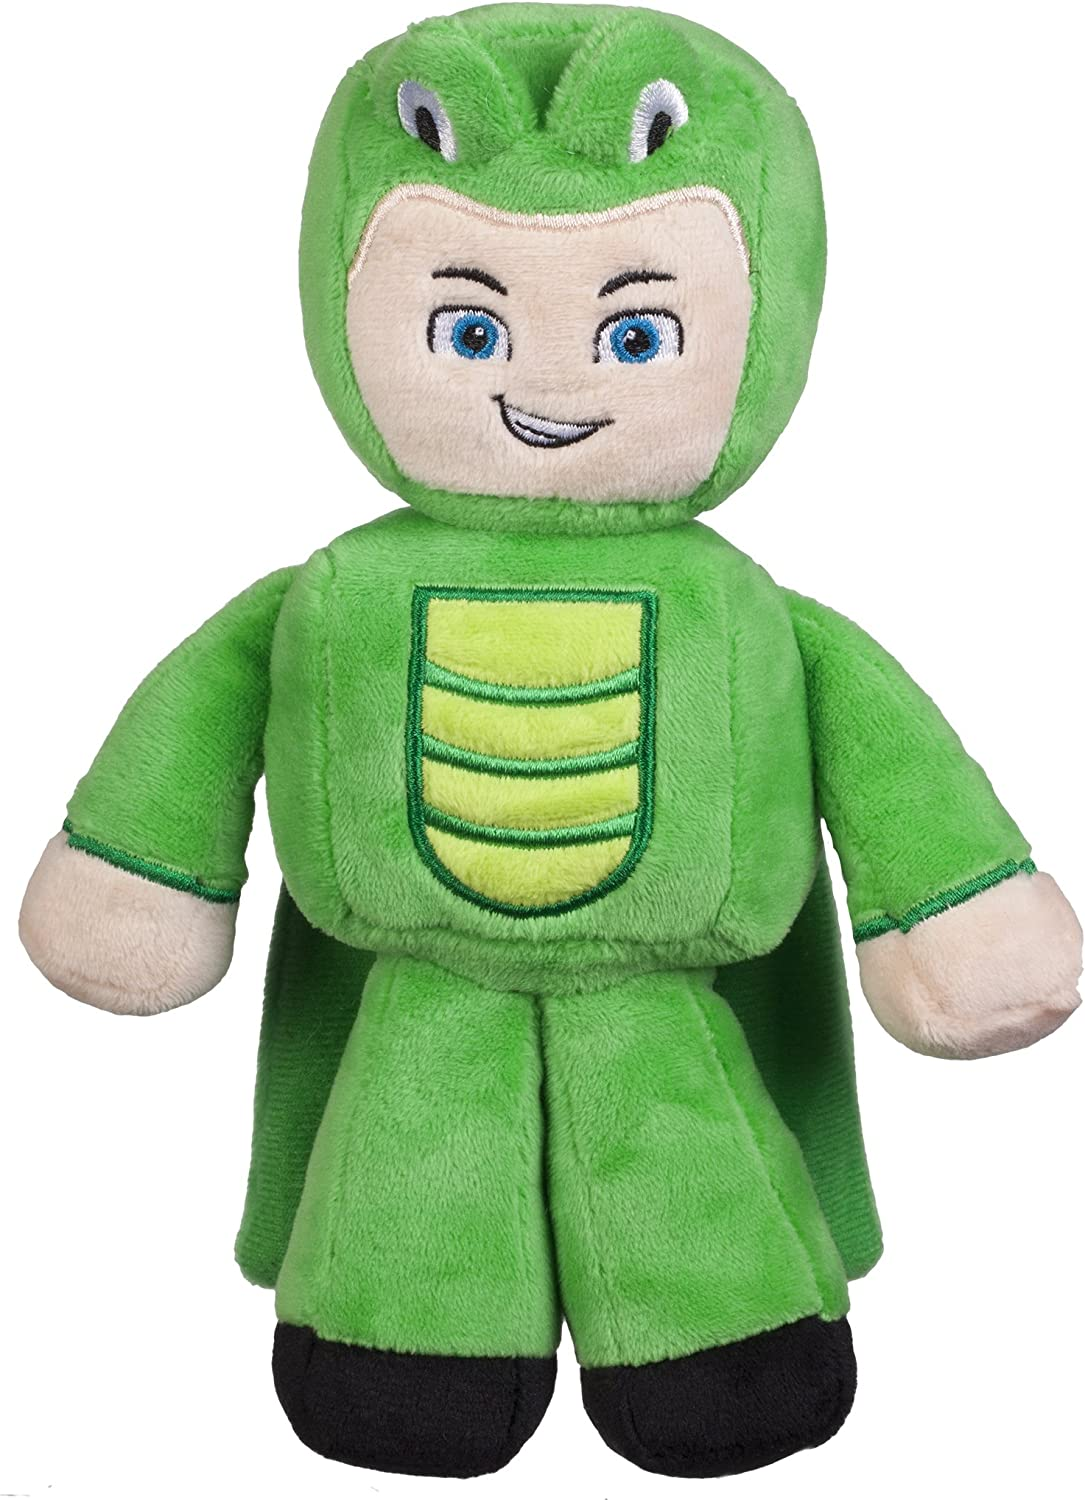 Tube Heroes Tiny Turtle Plush